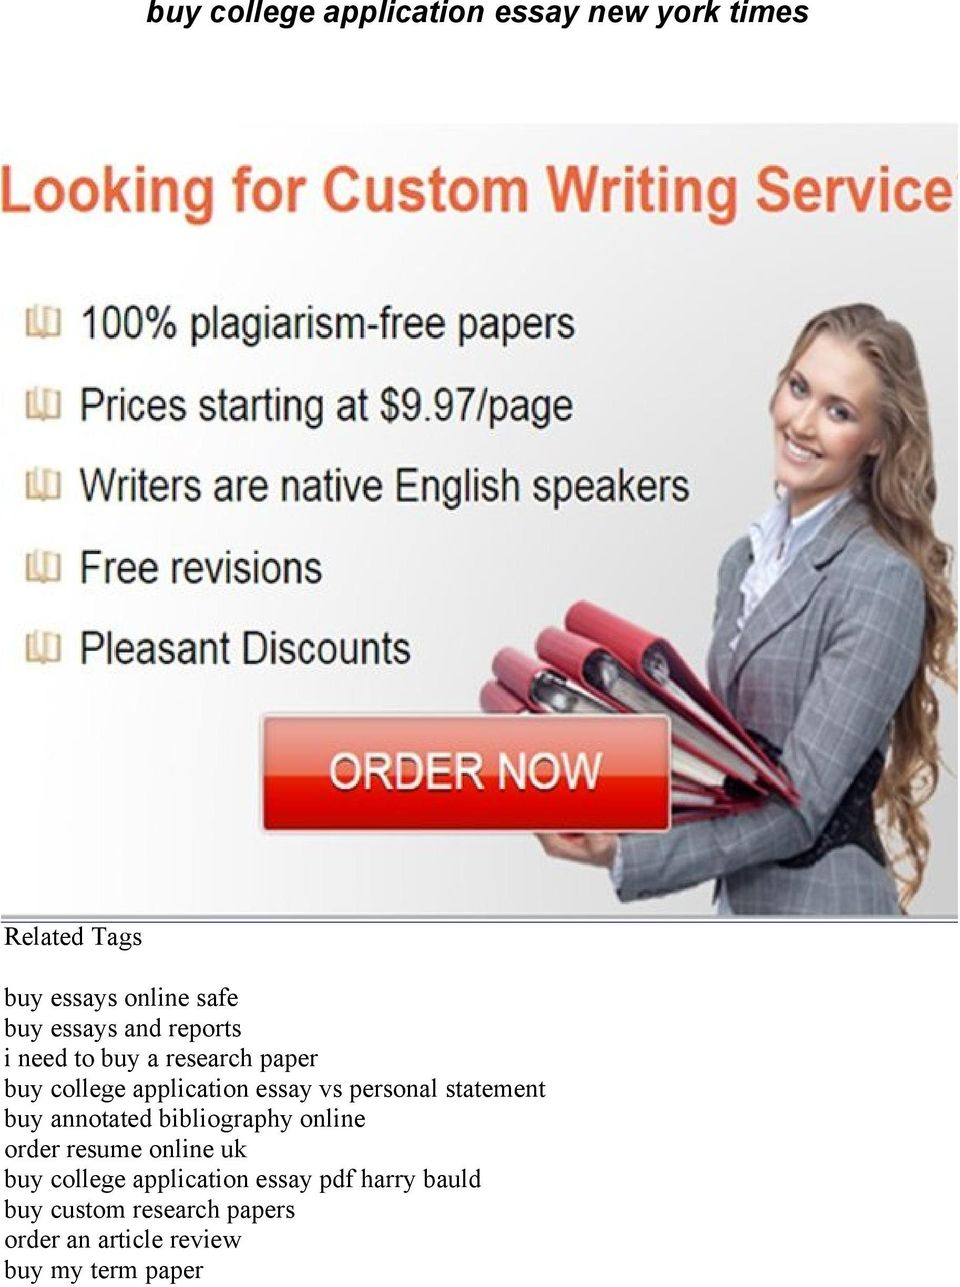 Creative Study Abroad Essay Advantages And Disadvantages